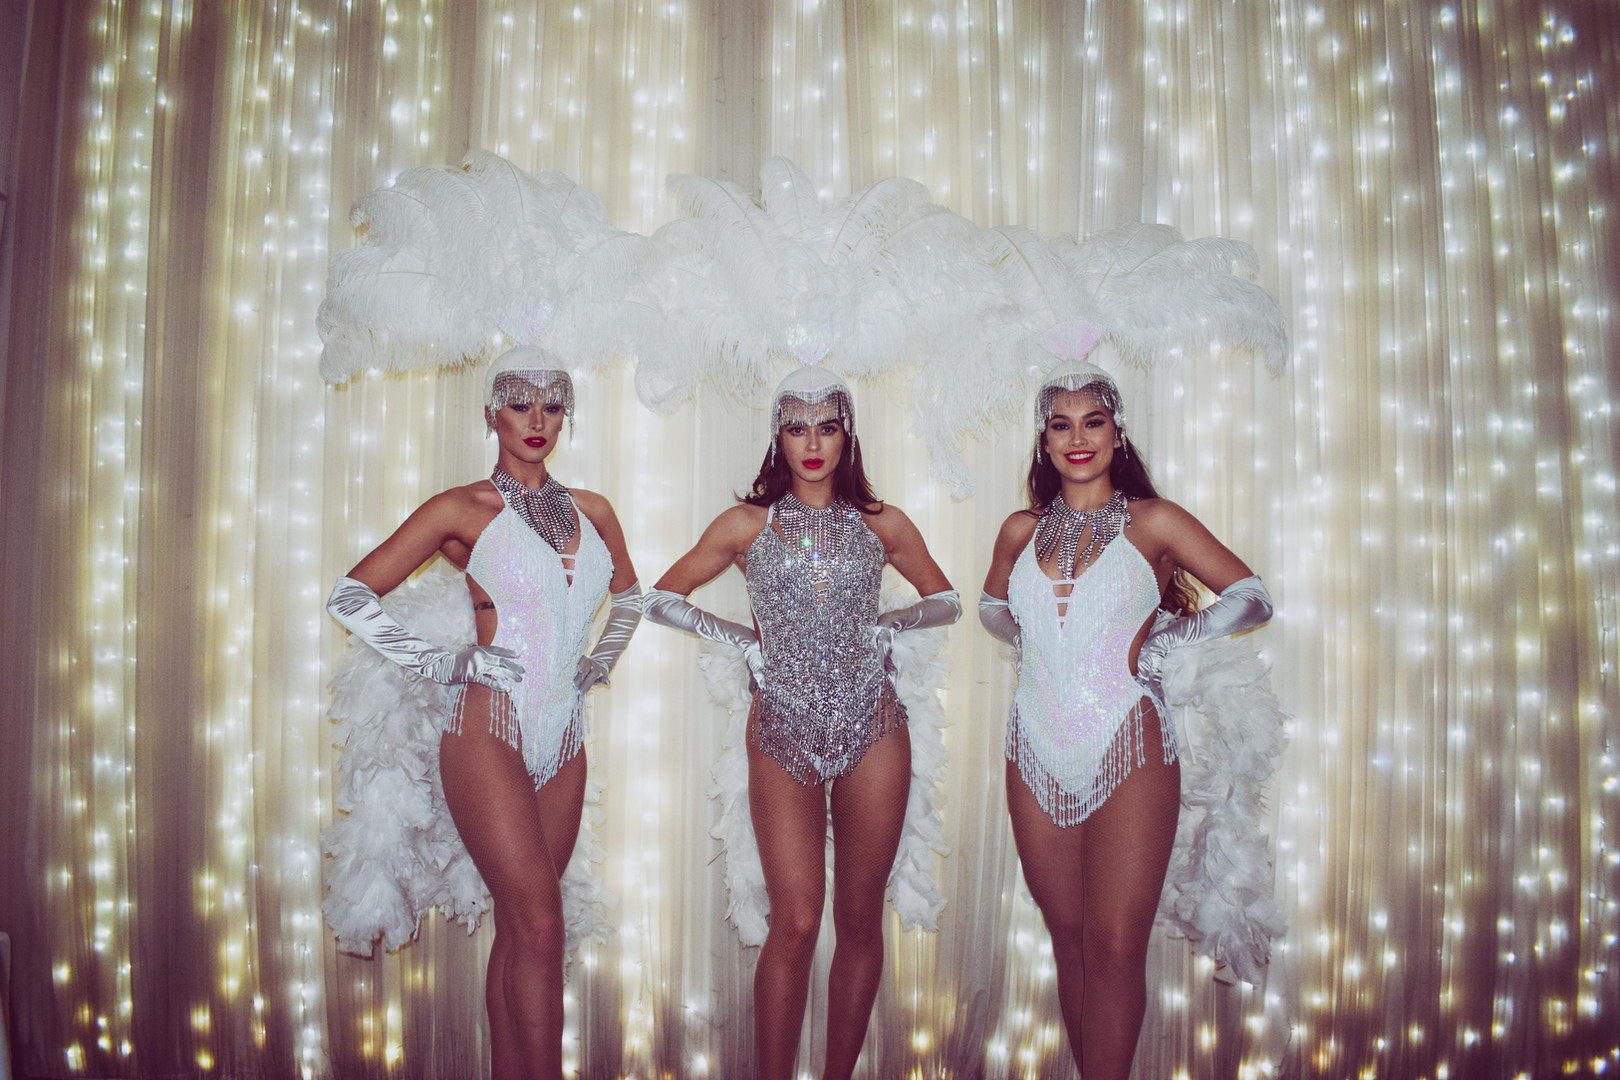 Showgirls and Event Dancers